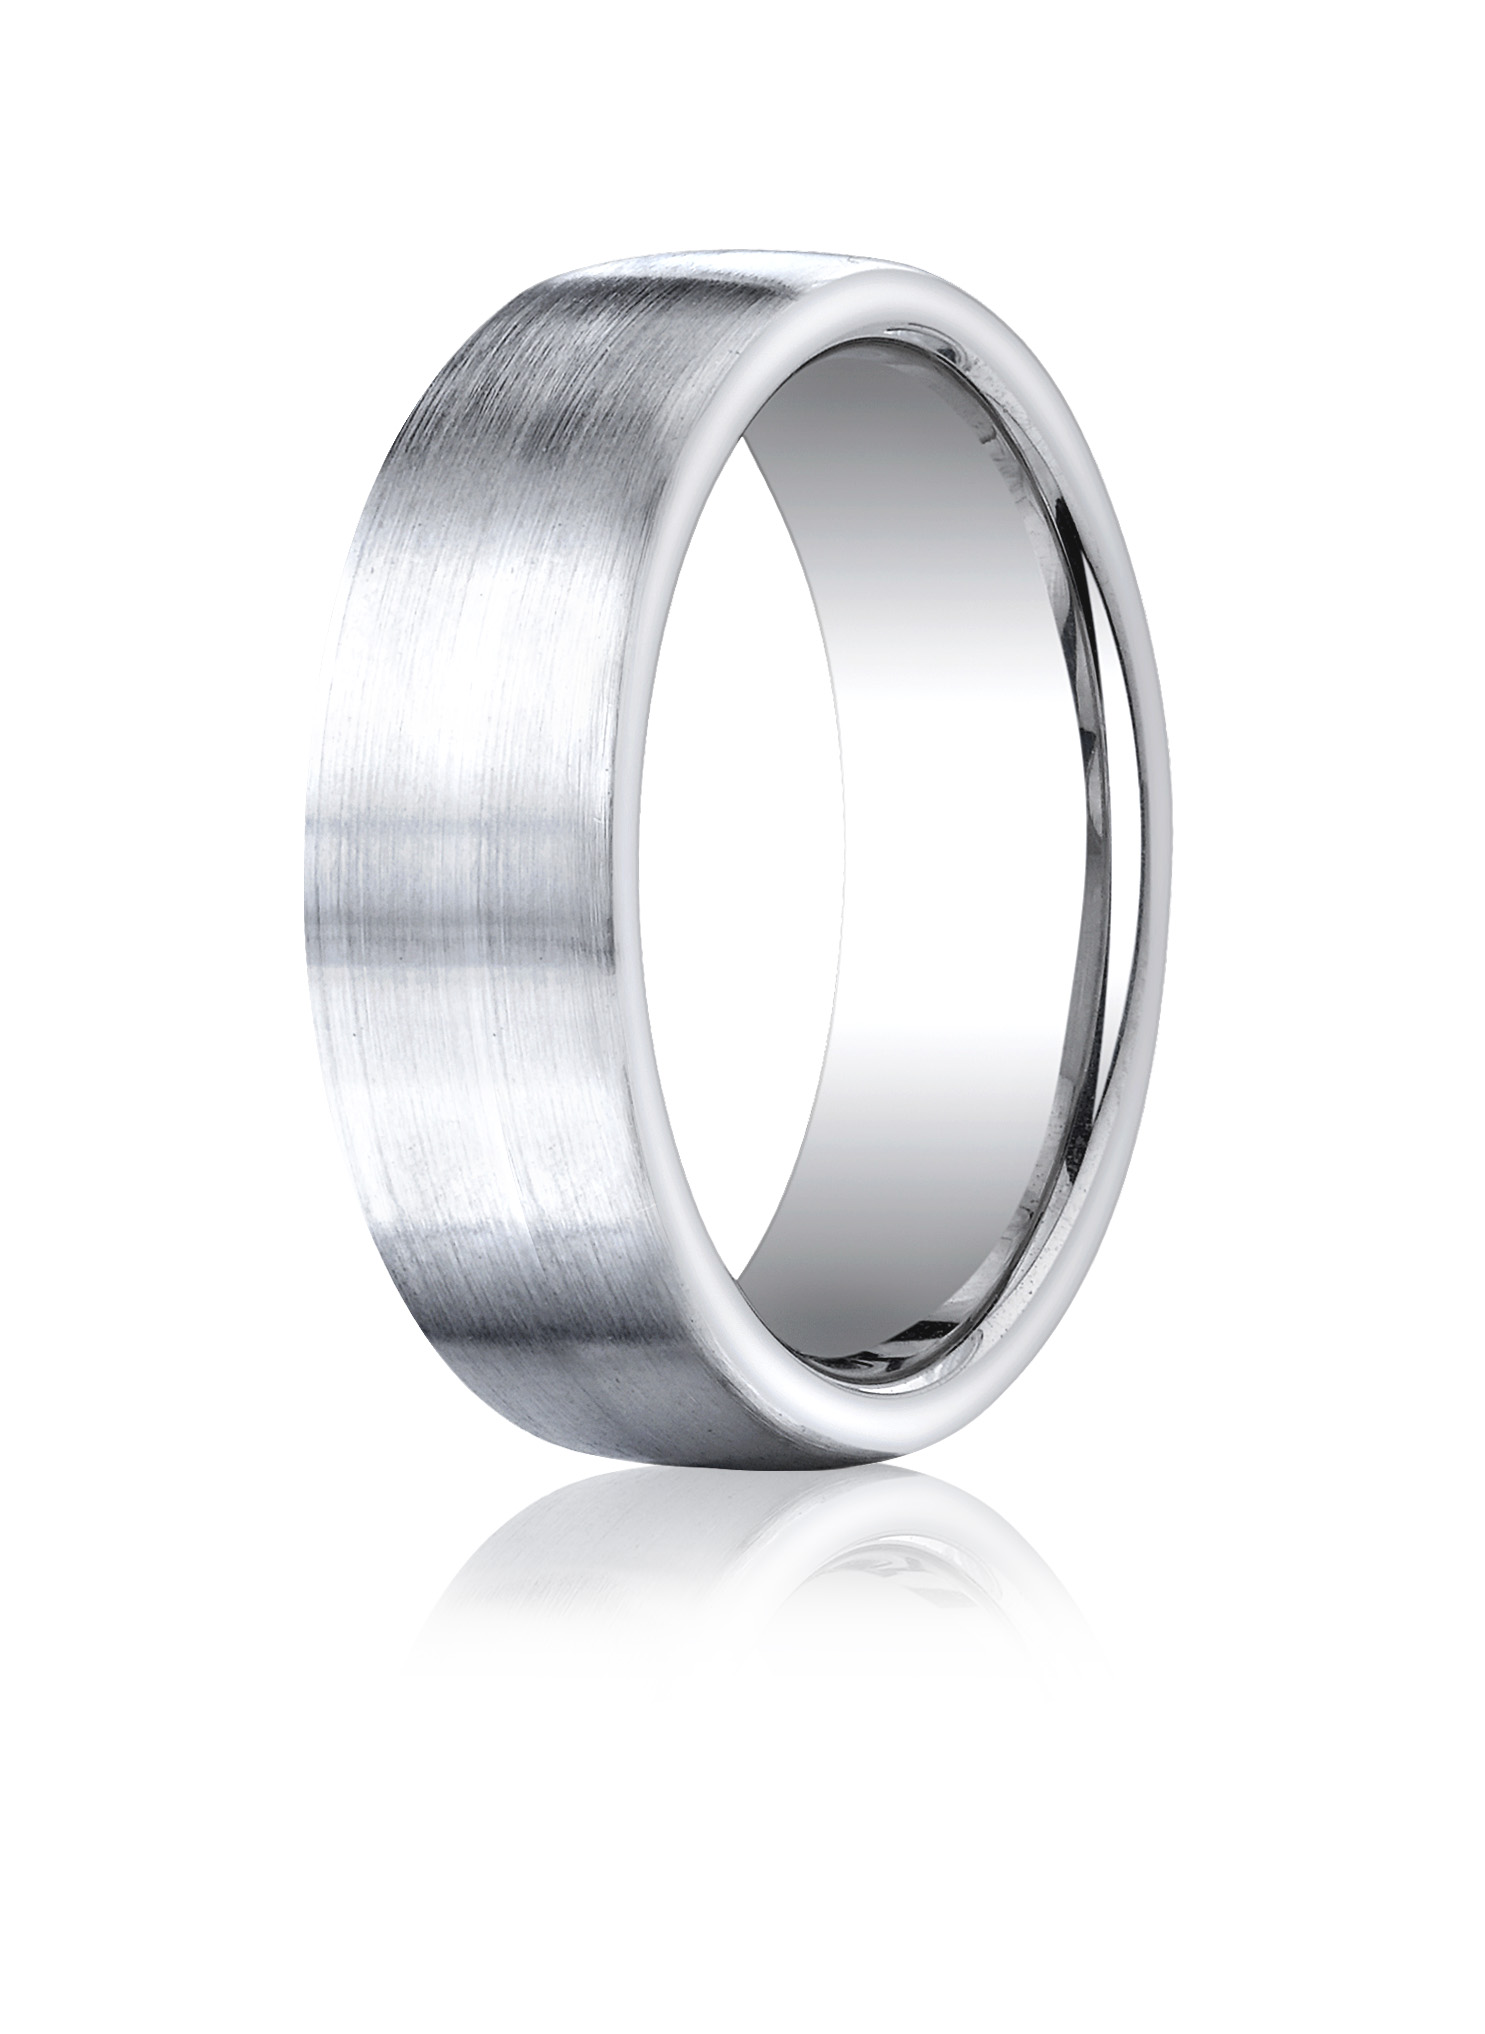 What Are The Different Metals For Men S Wedding Bands